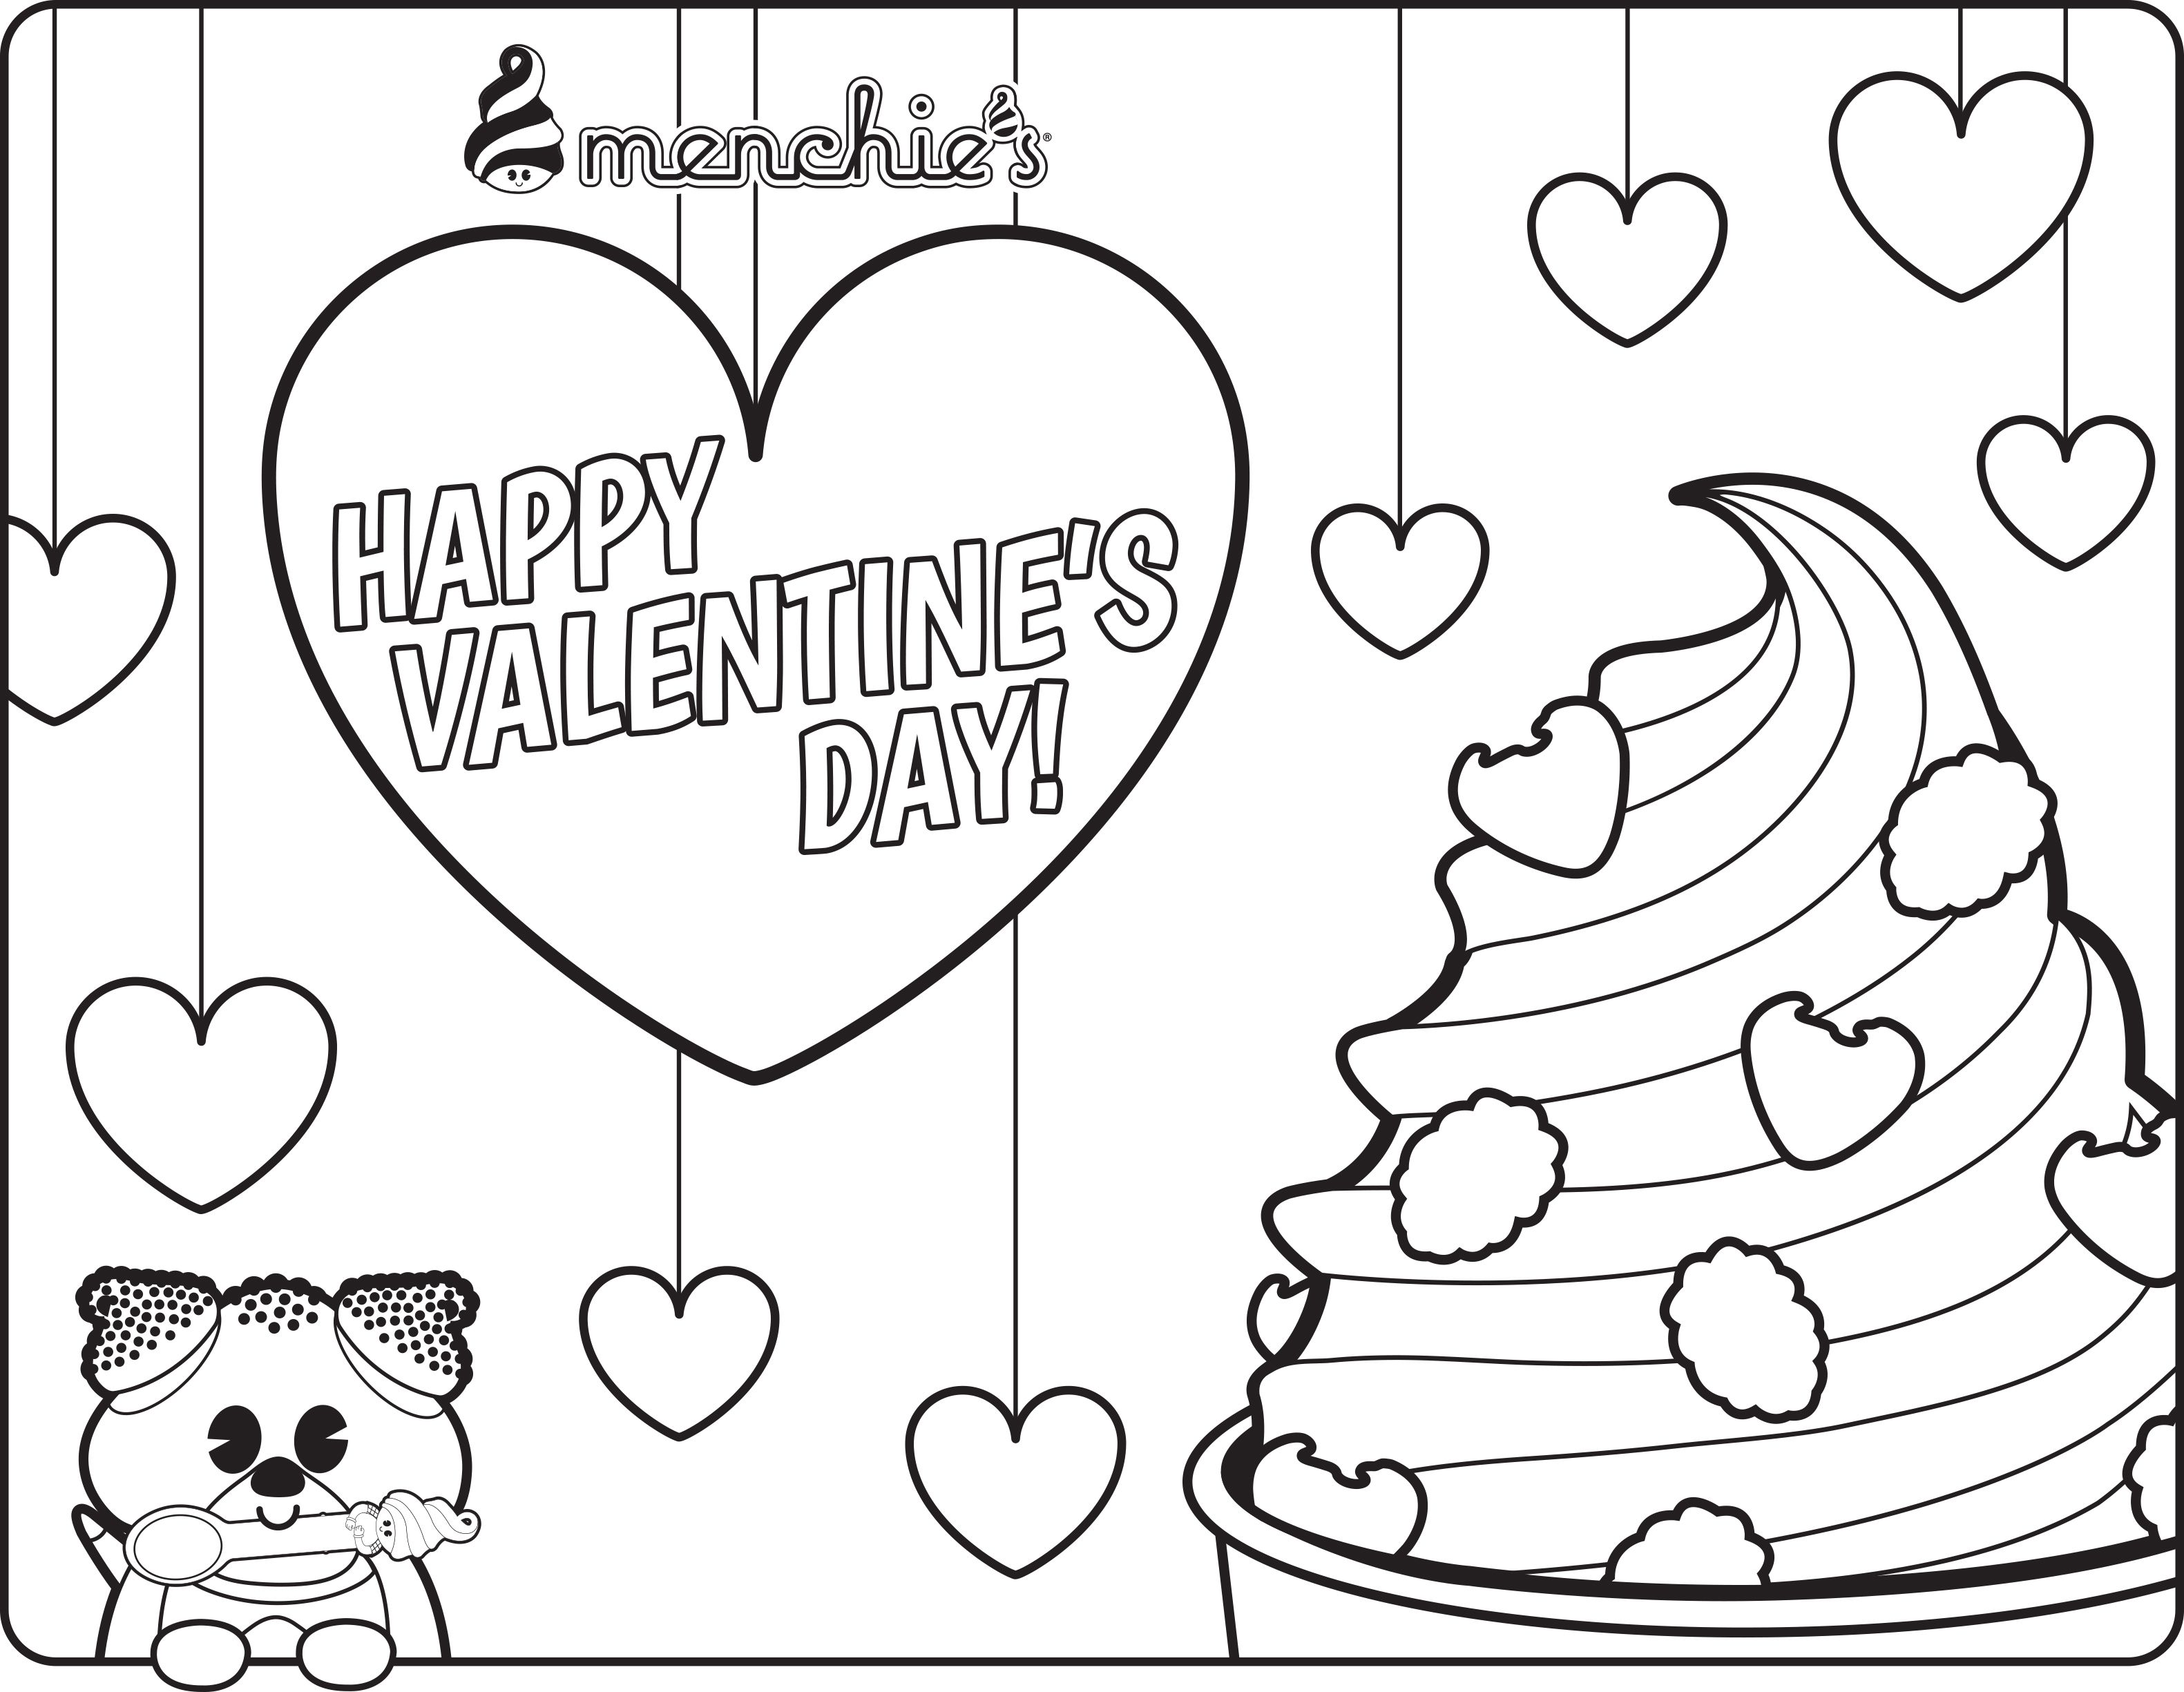 Pin on Valentine's Day Froyo Images